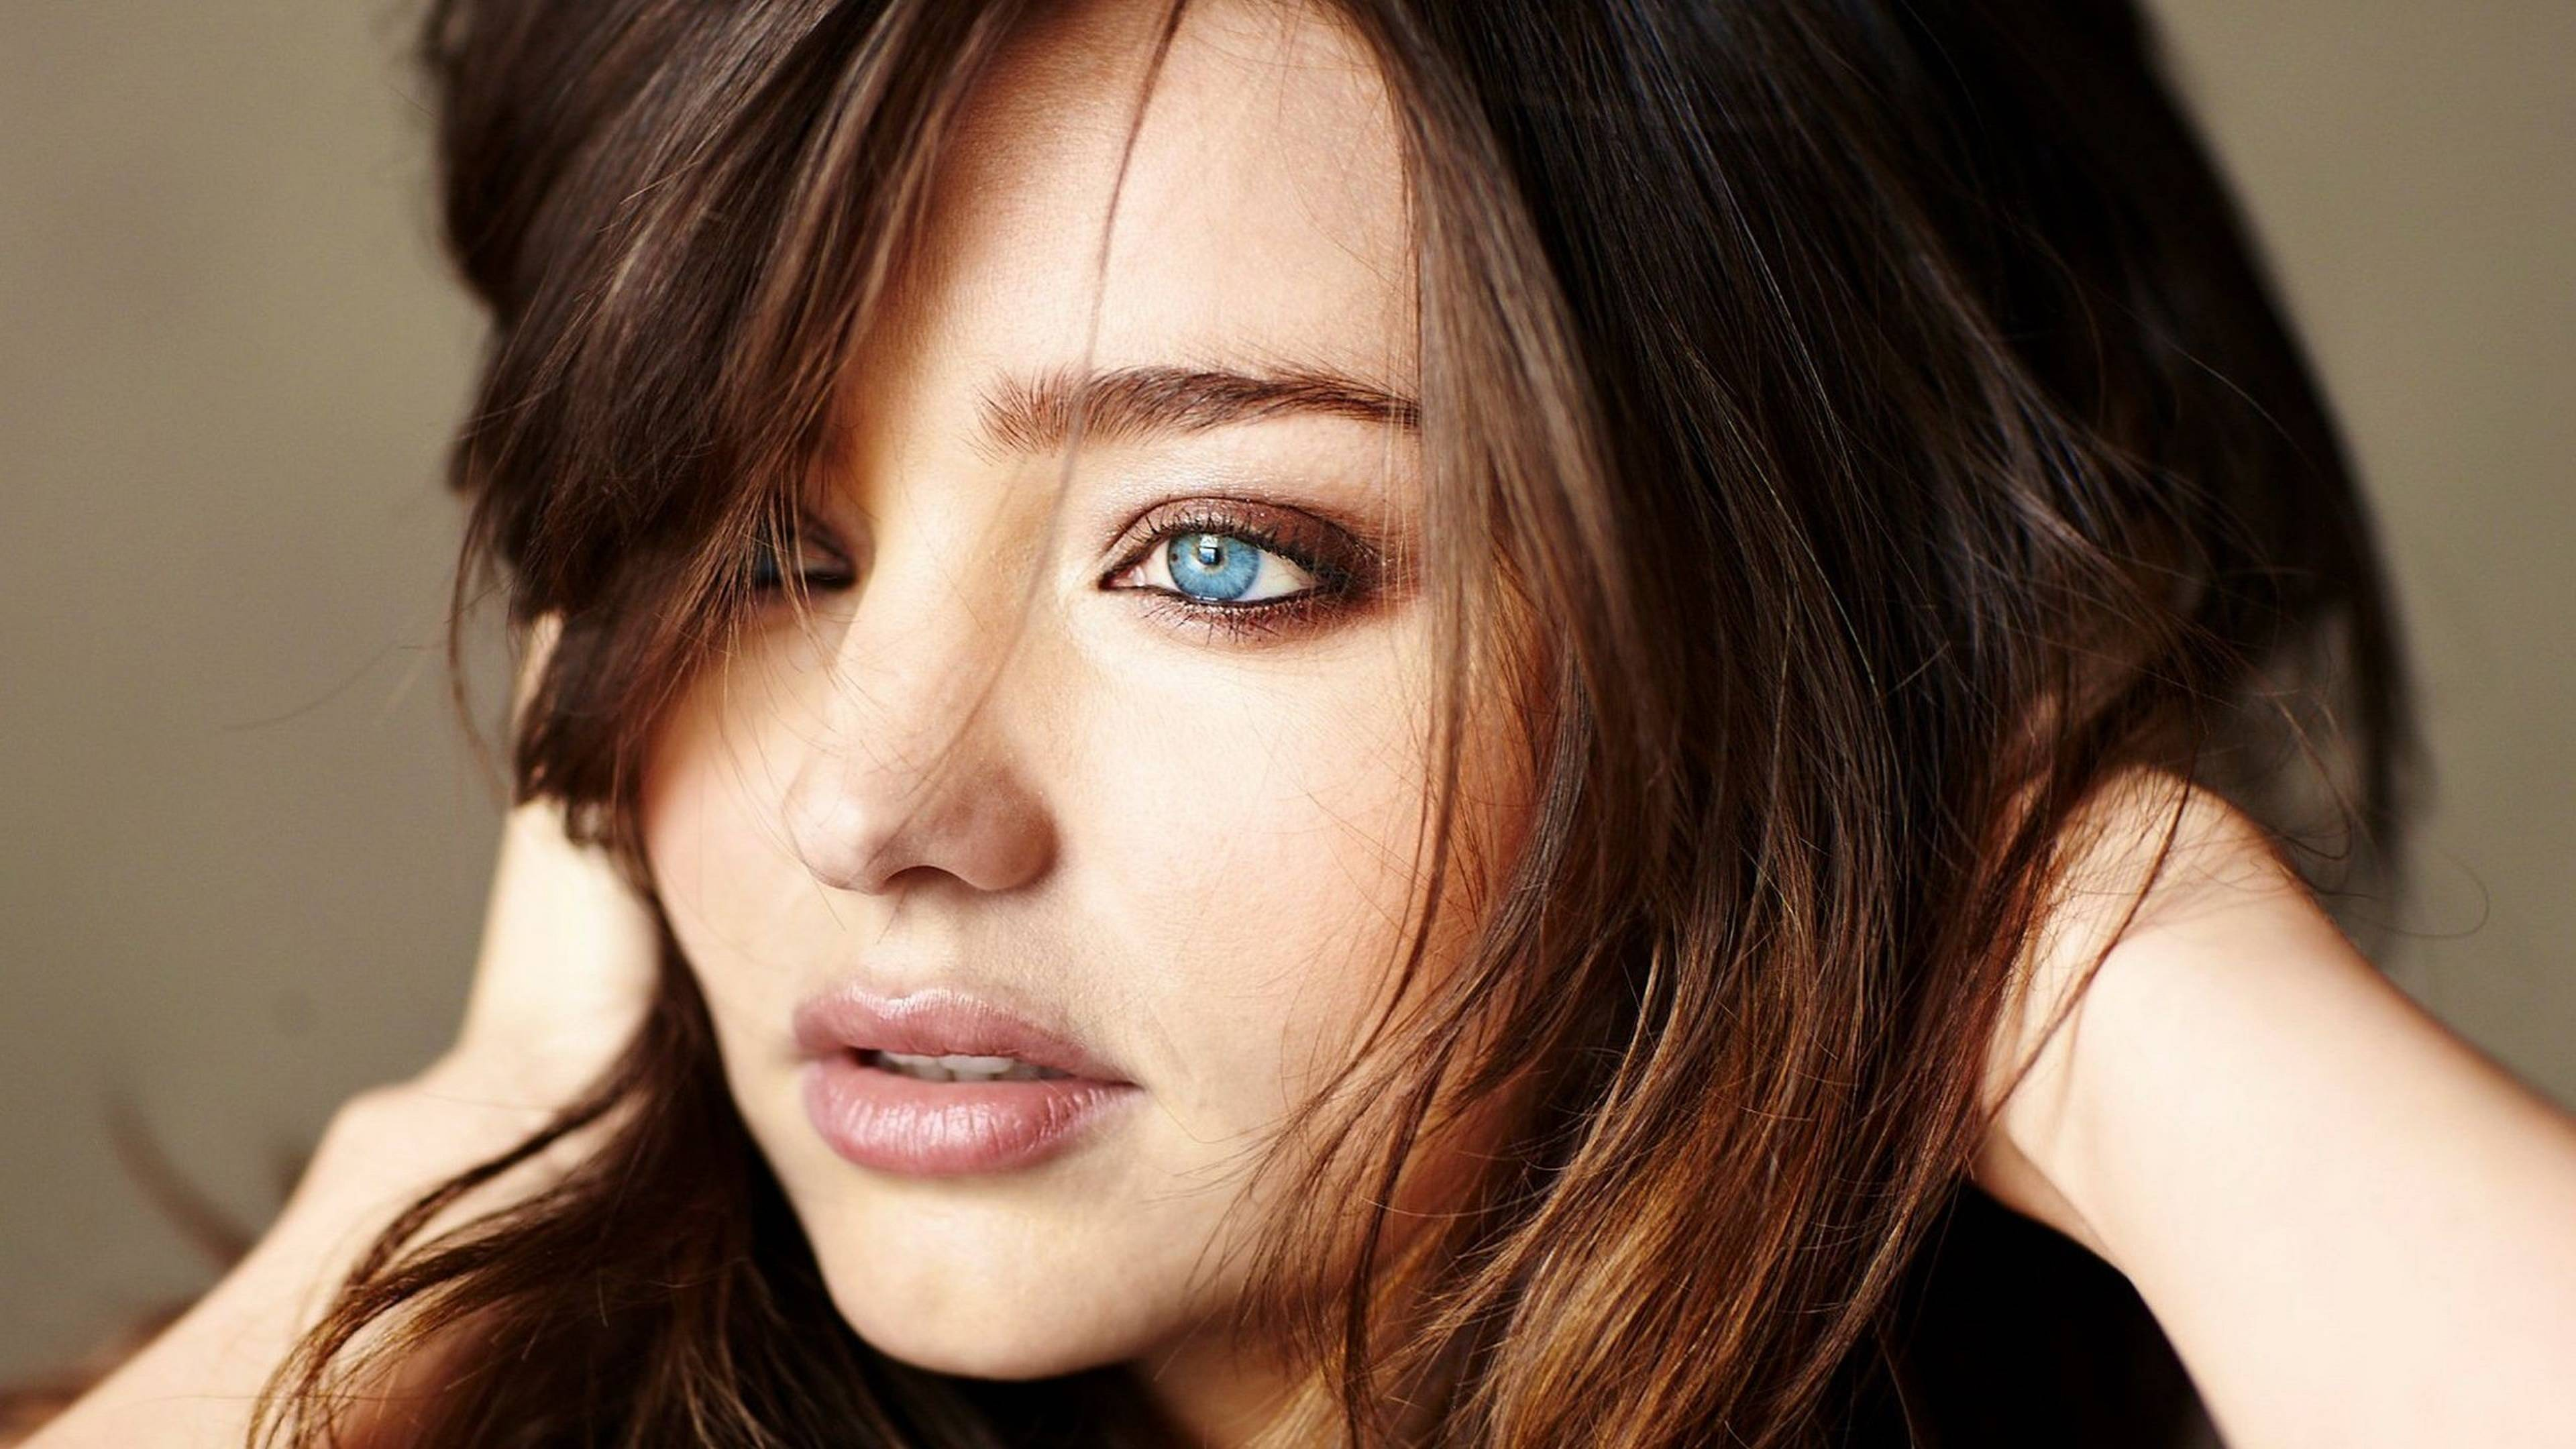 Miranda Kerr Computer Wallpapers, Desktop Backgrounds 3840x2160 Id